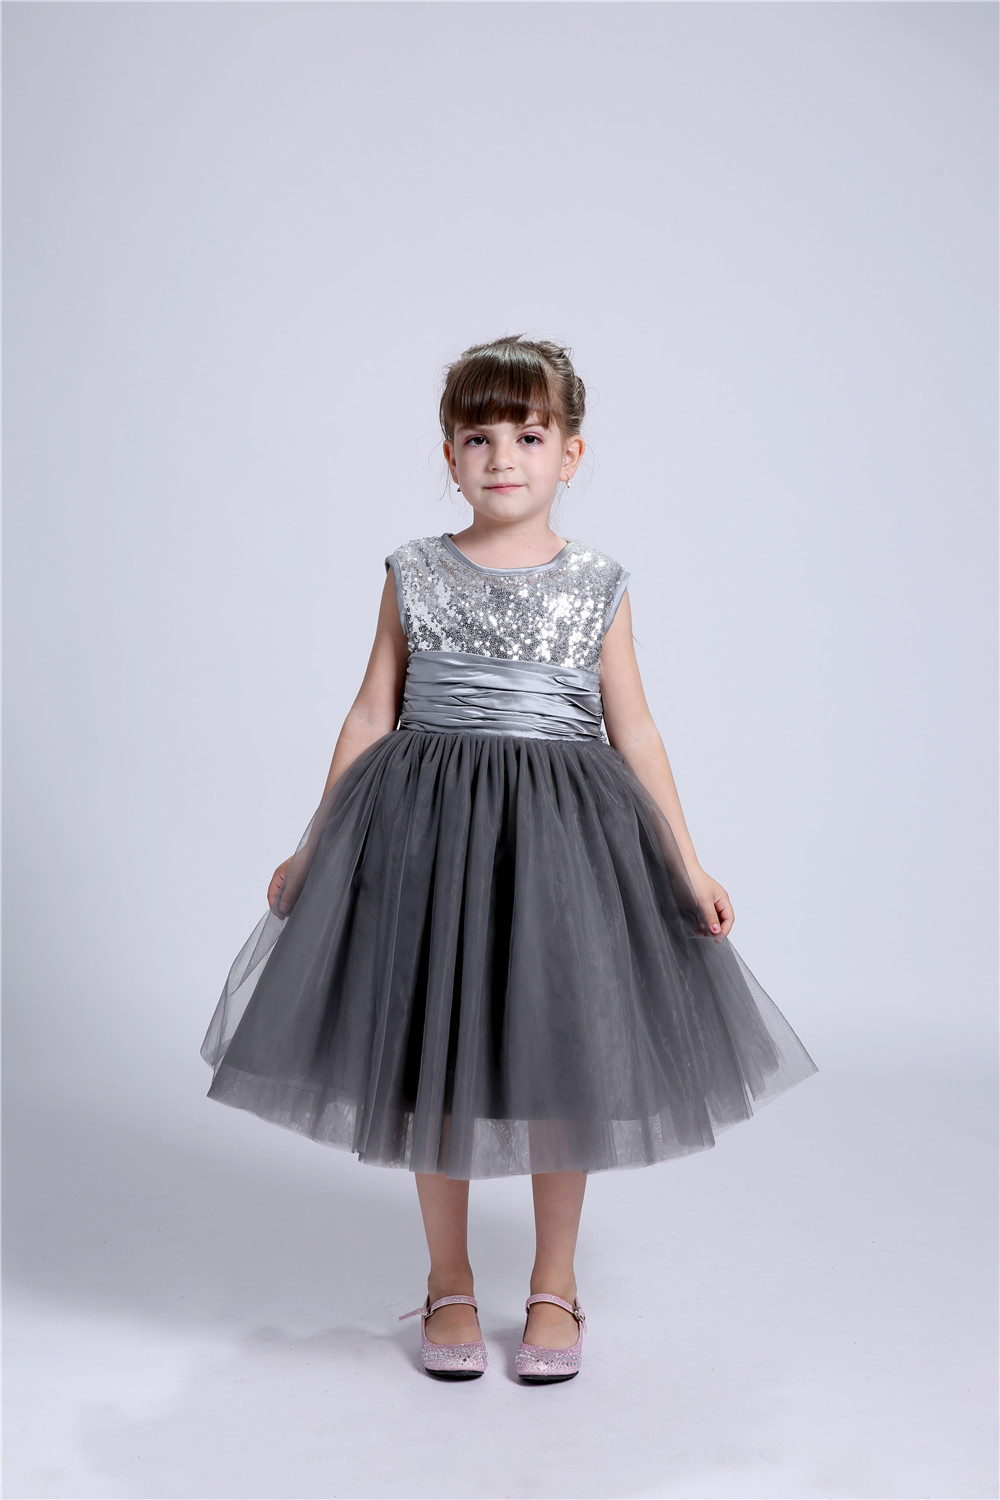 Girls' Clothing Dresses Girls Dresses For Party And Wedding Princess Summer Dress Vintage Retro Cotton Luxury Brand Birthday Dress 3 4 5 8 10 Years Old Sophisticated Technologies